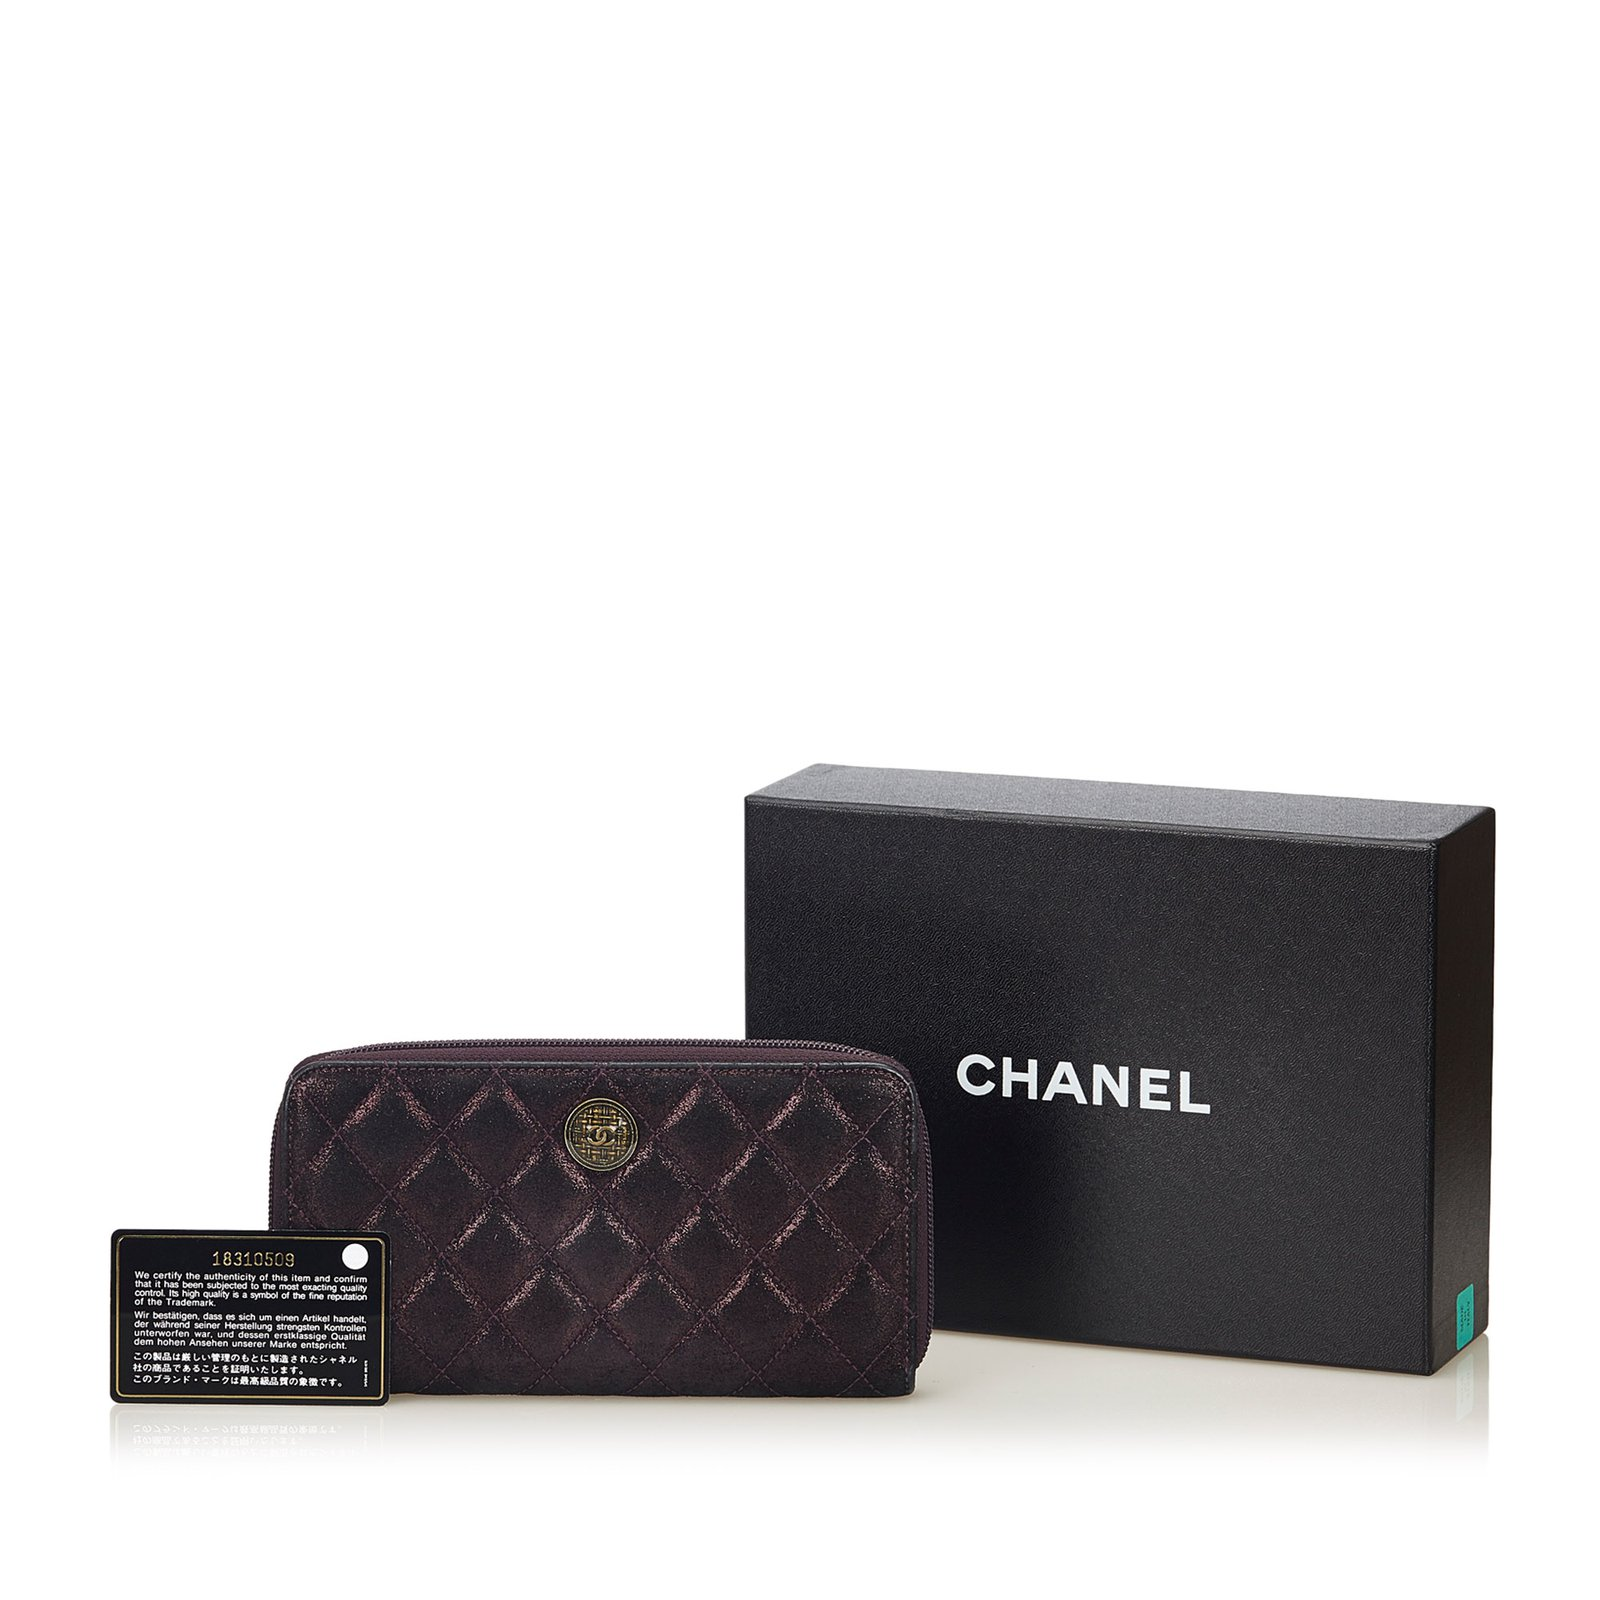 496bf0753d6f Chanel Matelasse Leather Long Wallet Purses, wallets, cases Leather ...